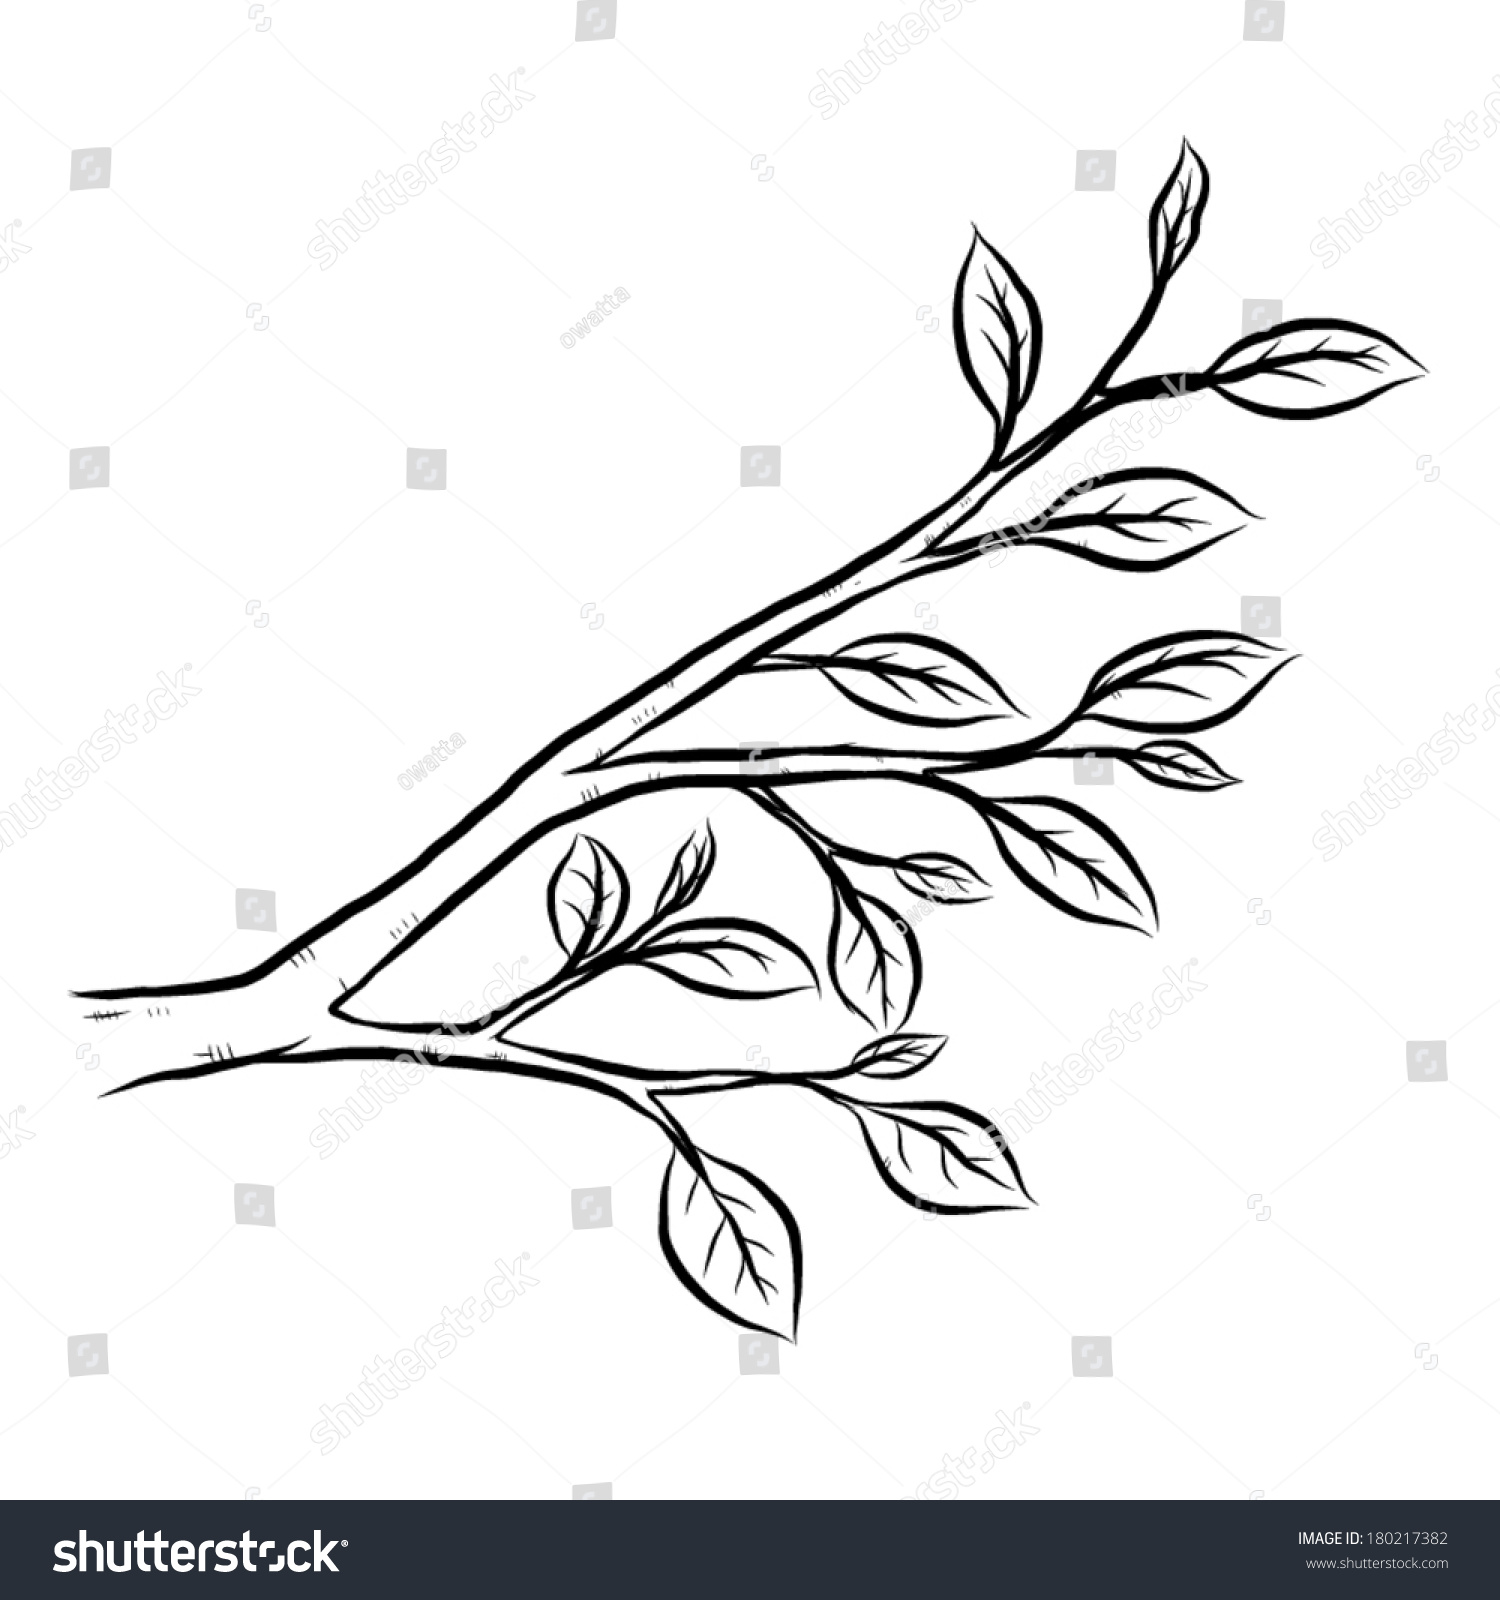 Branch Leaves Cartoon Vector Illustration Black Stock ...